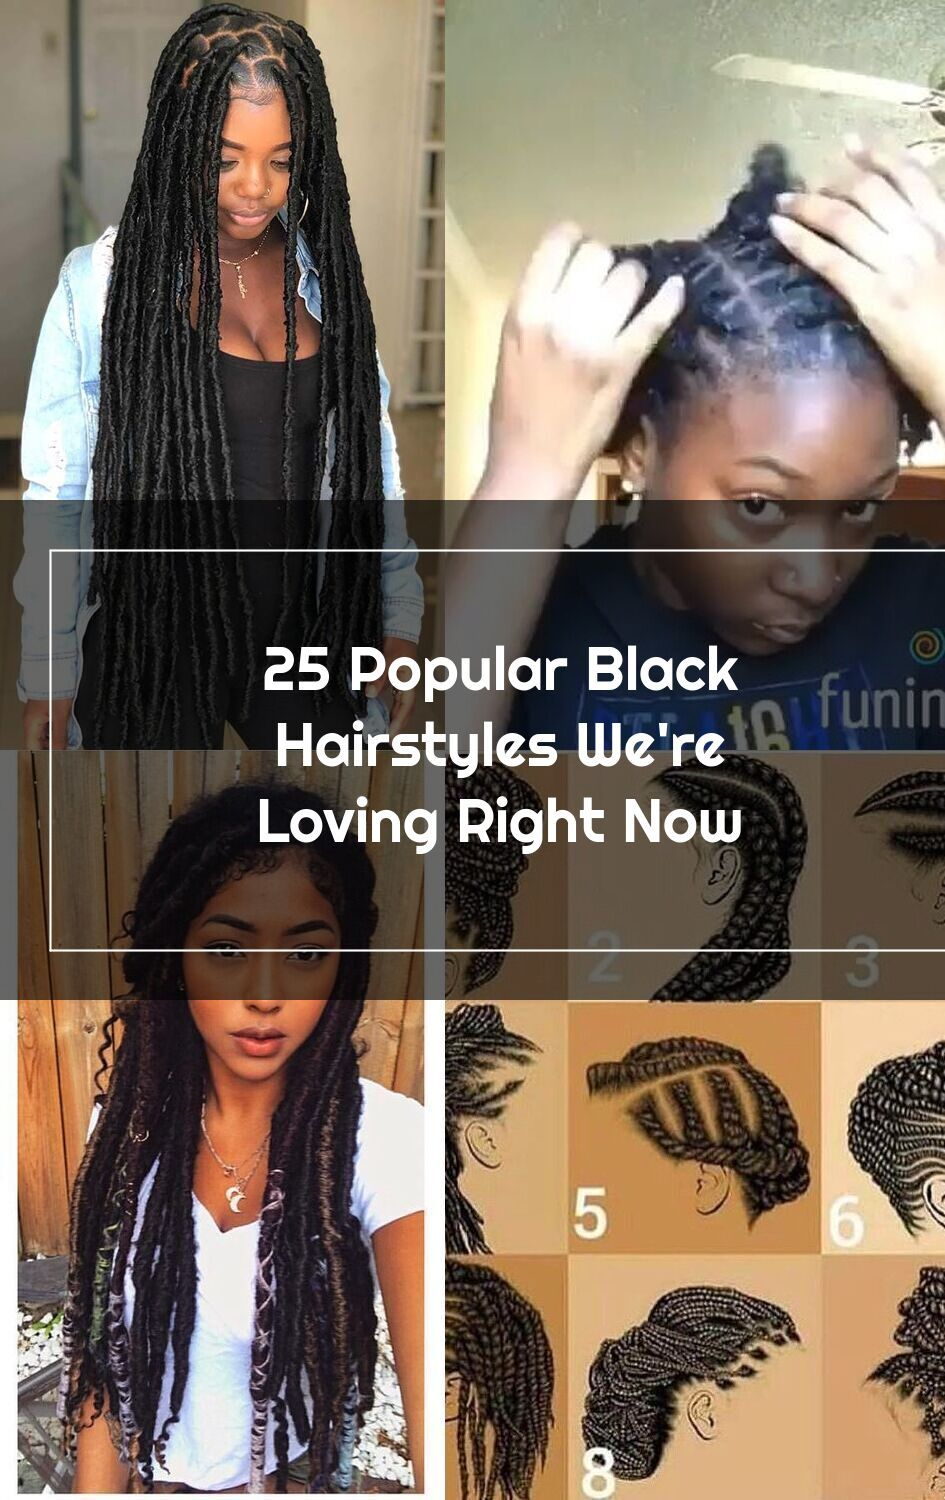 25 Popular Black Hairstyles We Re Loving Right Now Stayglam This Is Real In 2020 Black Hair Types Of Fashion Styles Hair Styles